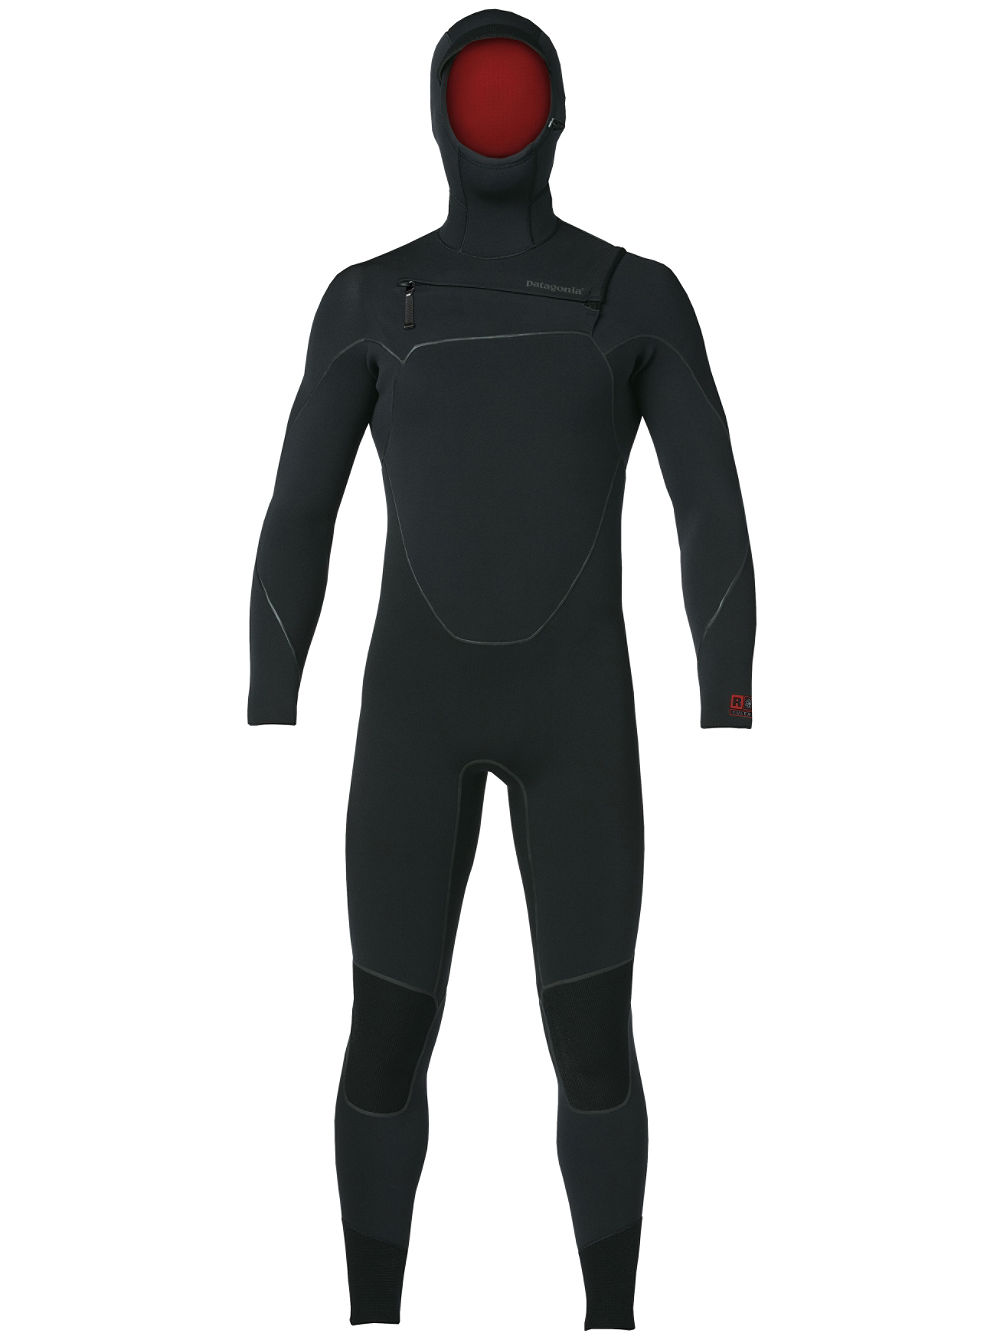 R4 Yulex Front Zip Hooded Wetsuit